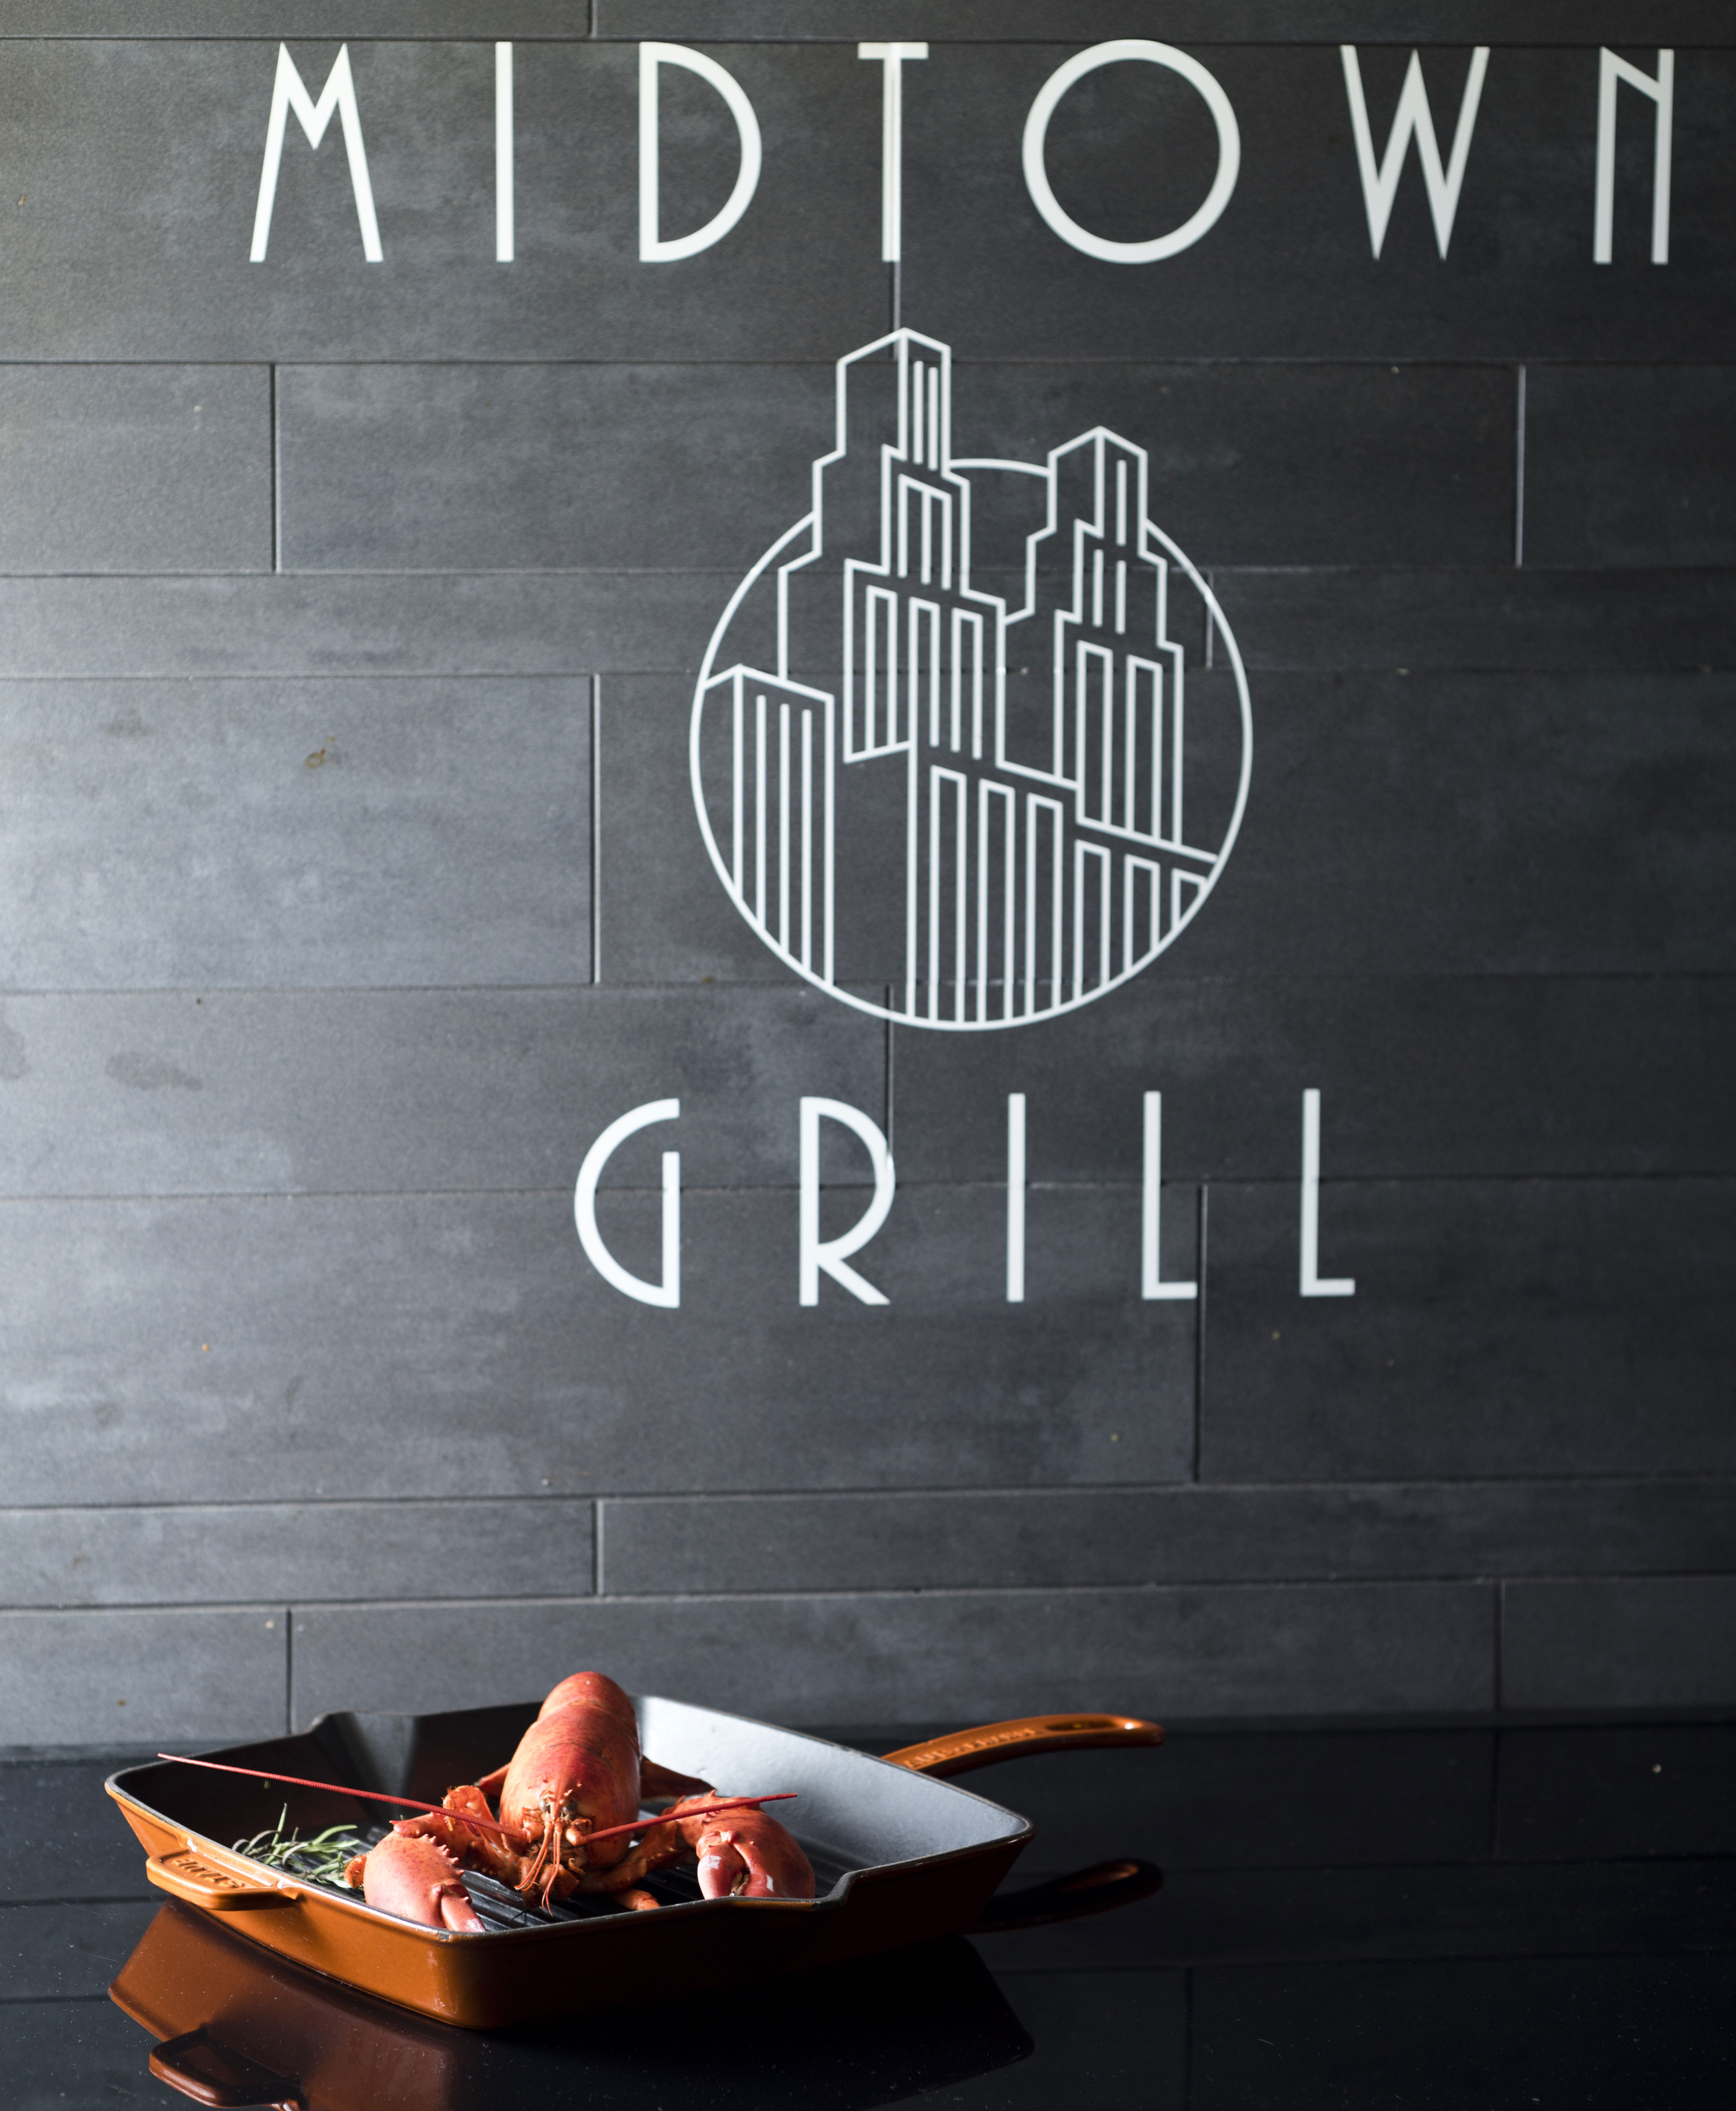 Midtown Grill Amsterdam - Amsterdam